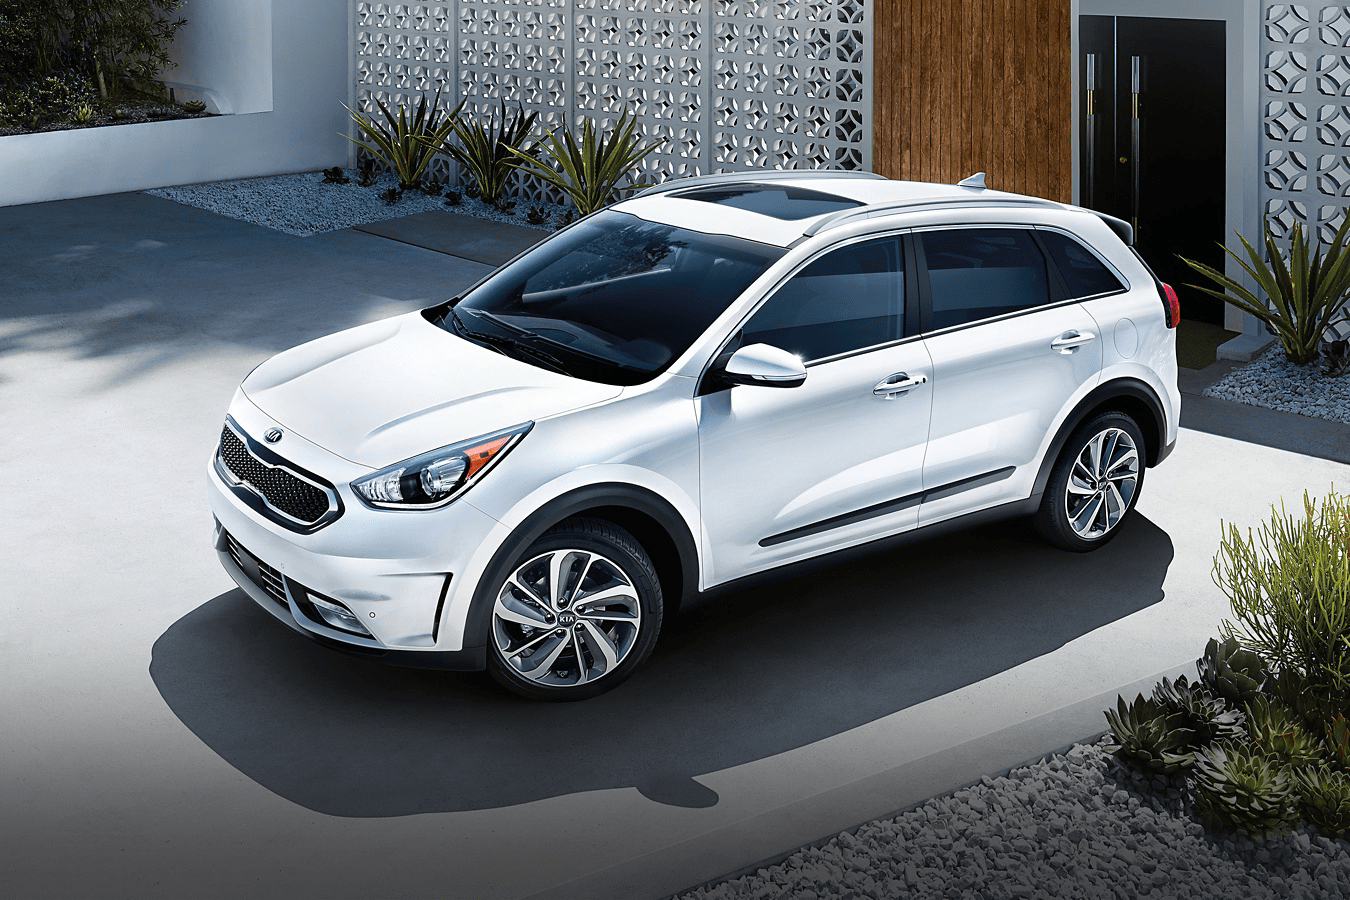 2019 Kia Niro in white